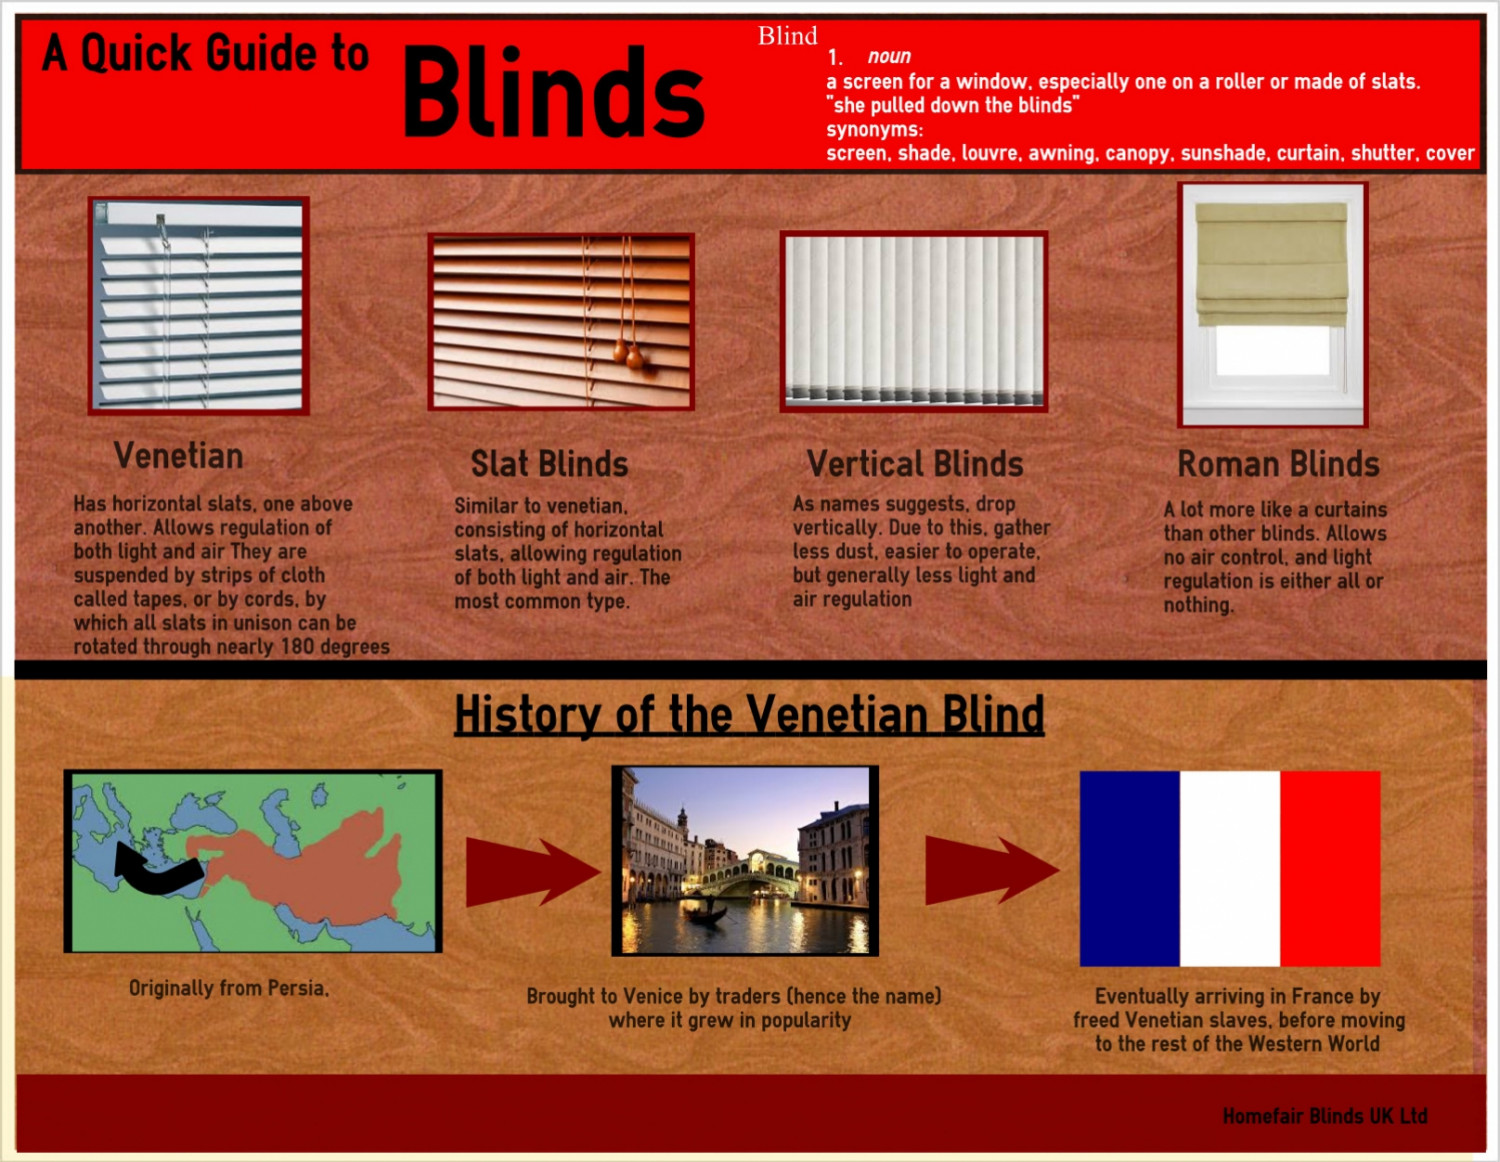 A quick guide to blinds Infographic